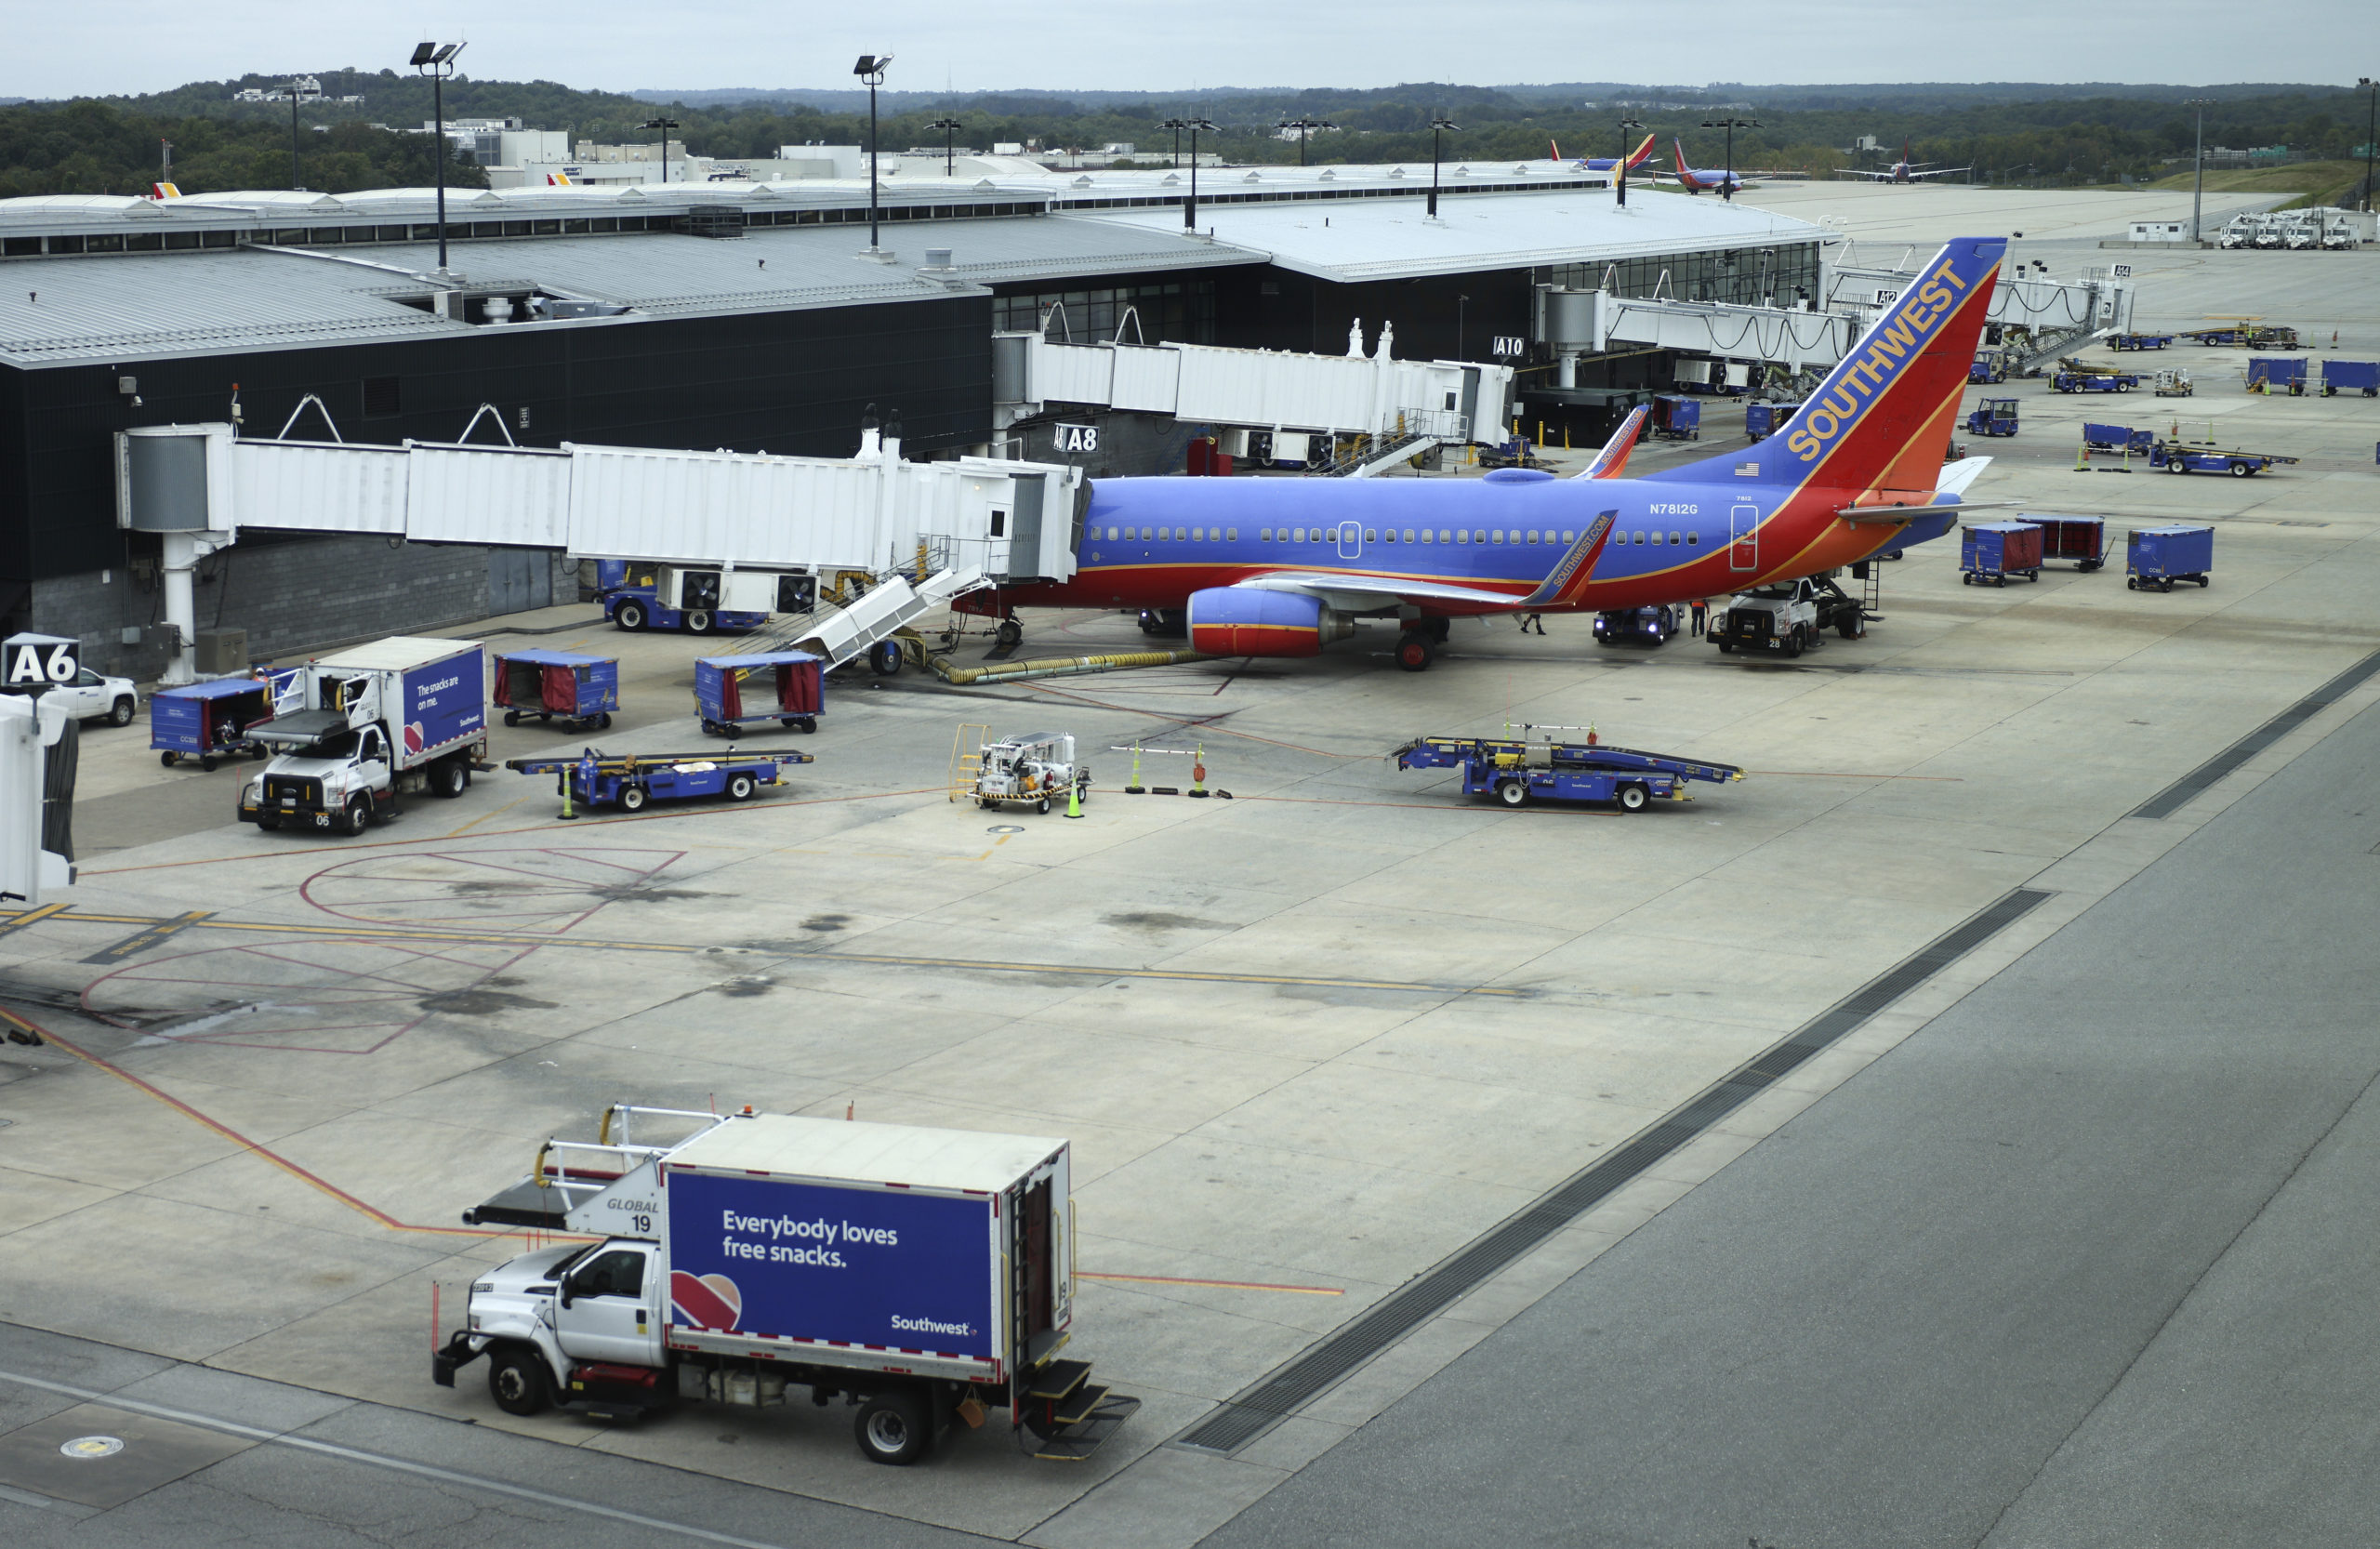 BALTIMORE, MARYLAND - OCTOBER 11: A Southwest Airlines airplane waits at a gate at Baltimore Washington International Thurgood Marshall Airport on October 11, 2021 in Baltimore, Maryland. Southwest Airlines is working to catch up on a backlog after canceling hundreds of flights over the weekend, blaming air traffic control issues and weather. (Photo by Kevin Dietsch/Getty Images)